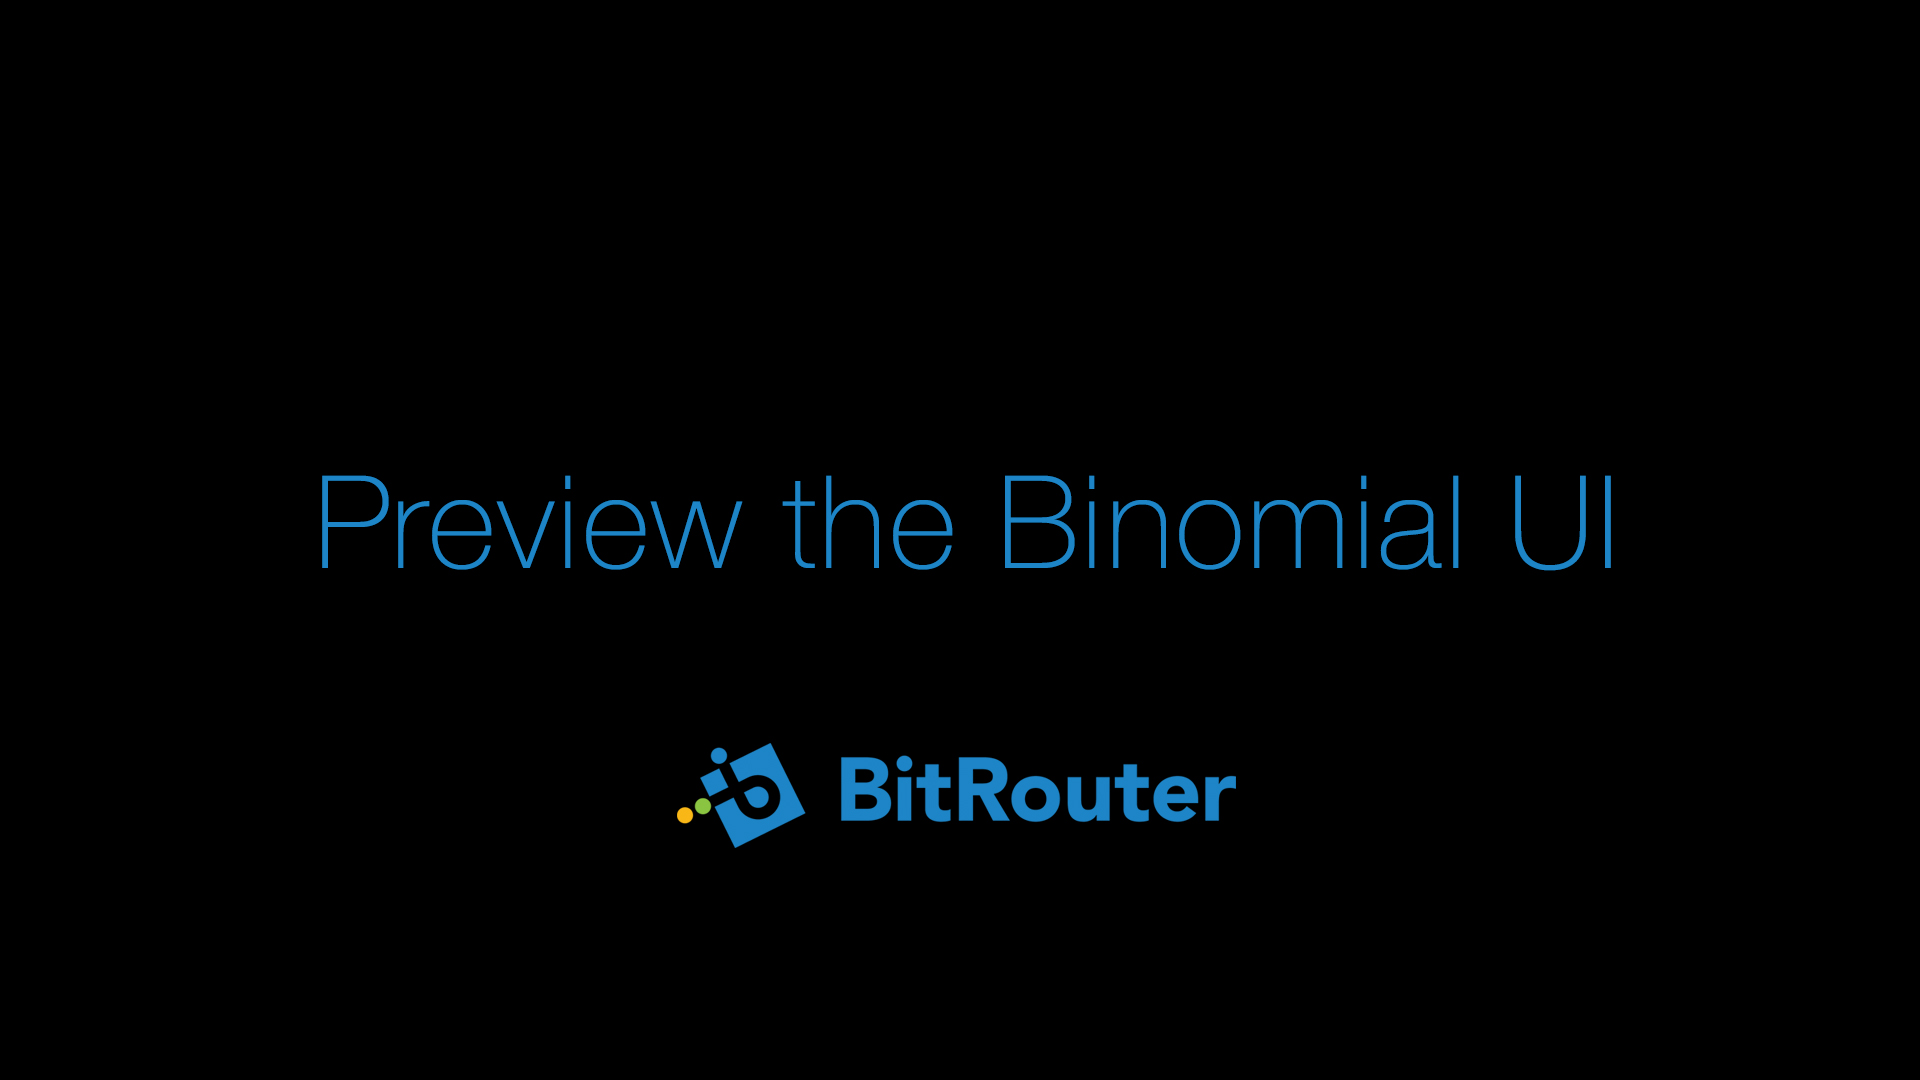 Click to Preview the Binomial UI